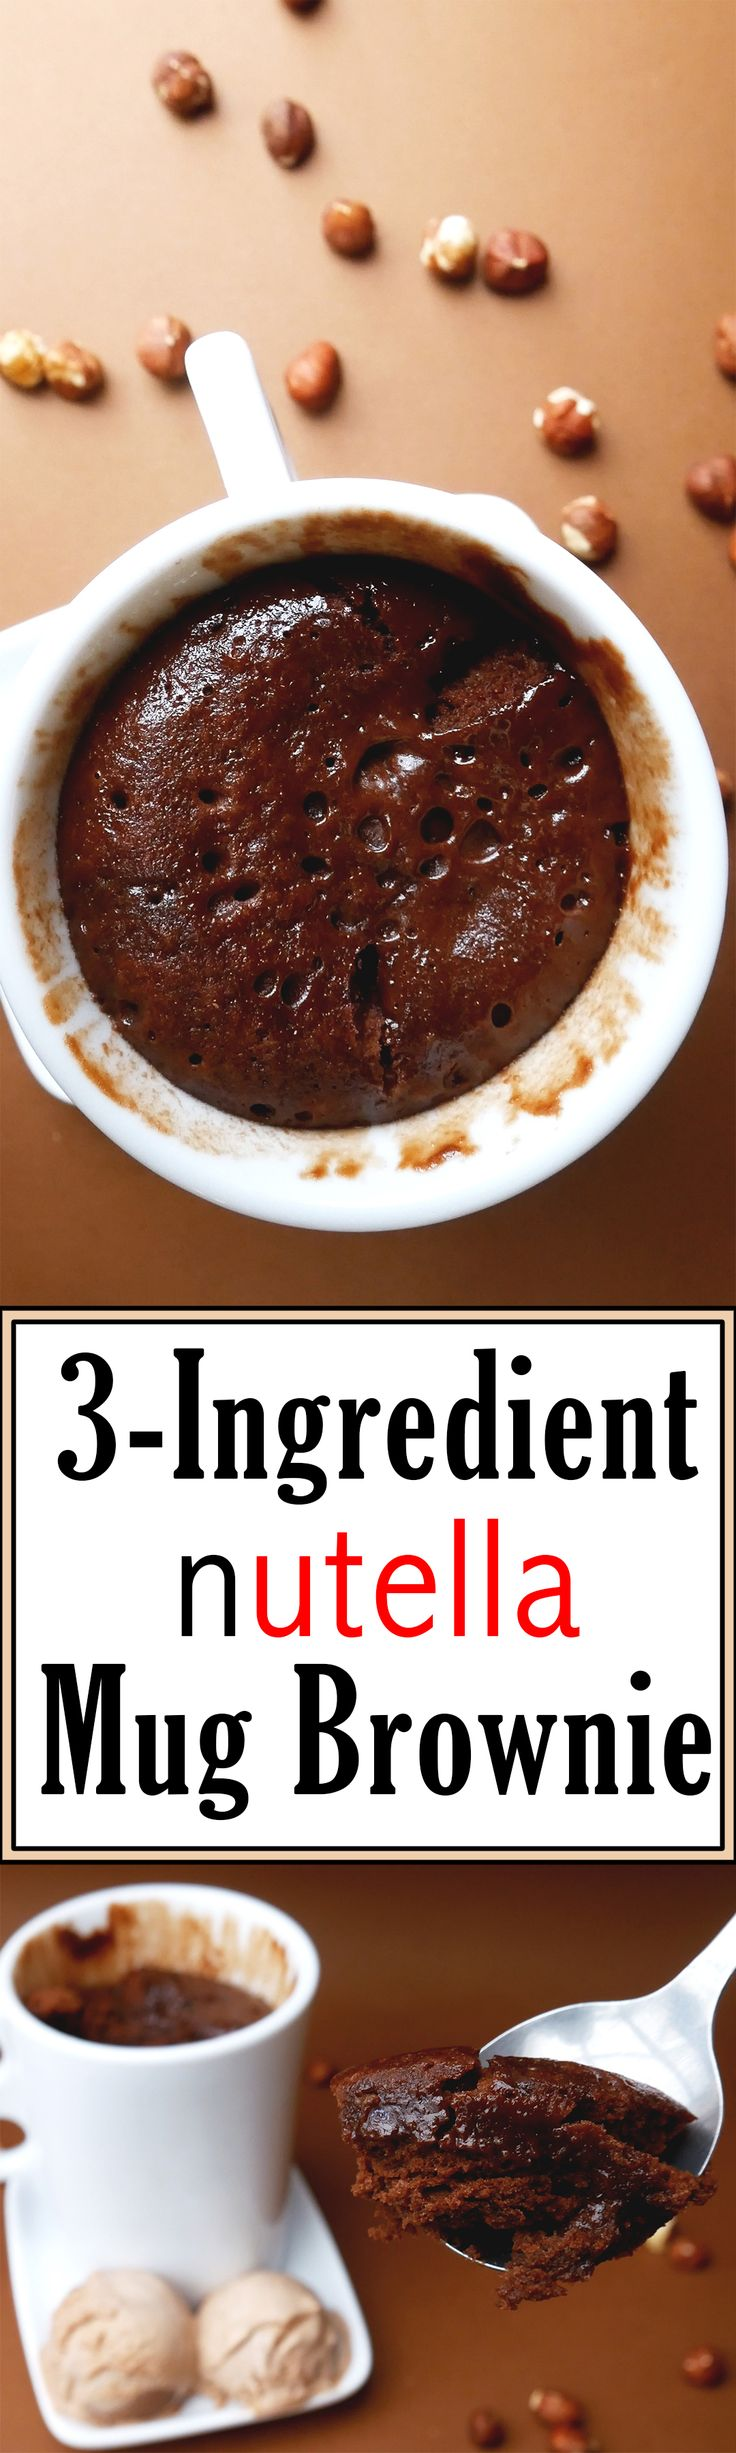 With just a few ingredients and about 10 minutes, you can make a delicious single-serving Nutella mug brownie!